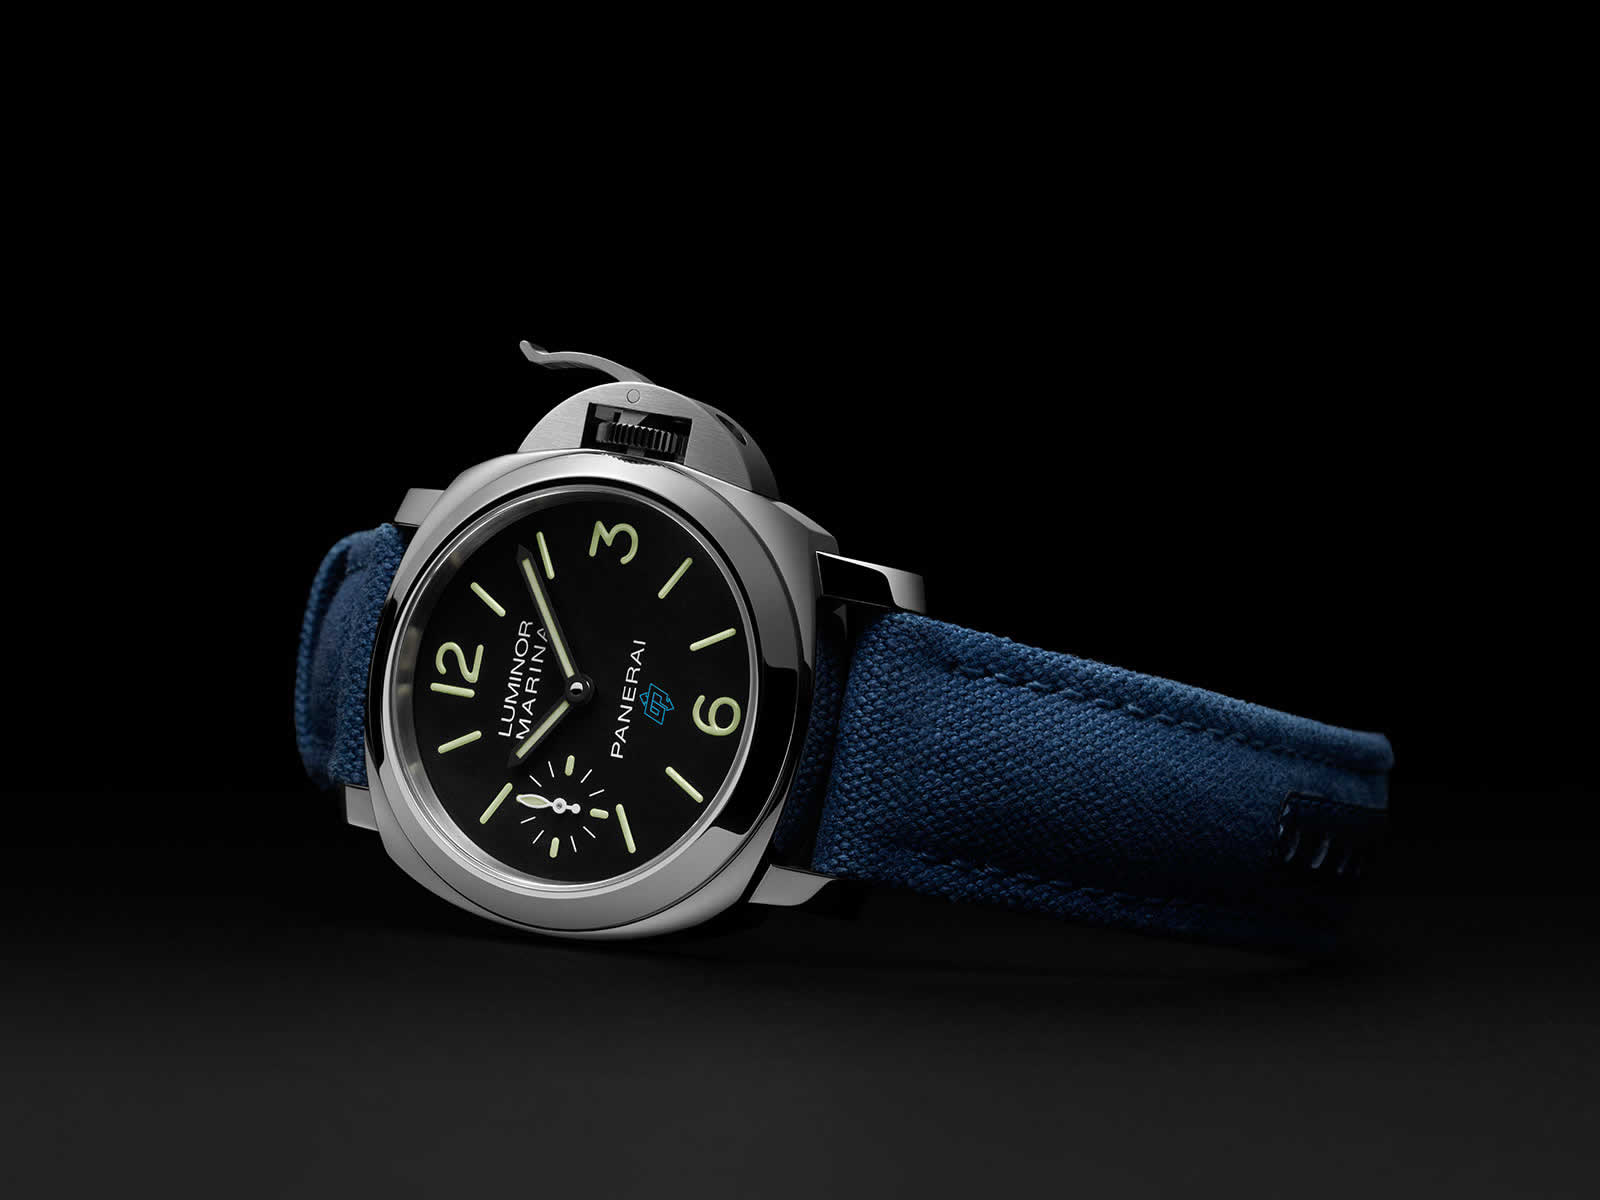 Panerai-Luminor-Marina-Logo-3-Days-Pam00777-Sihh2018-6.jpg